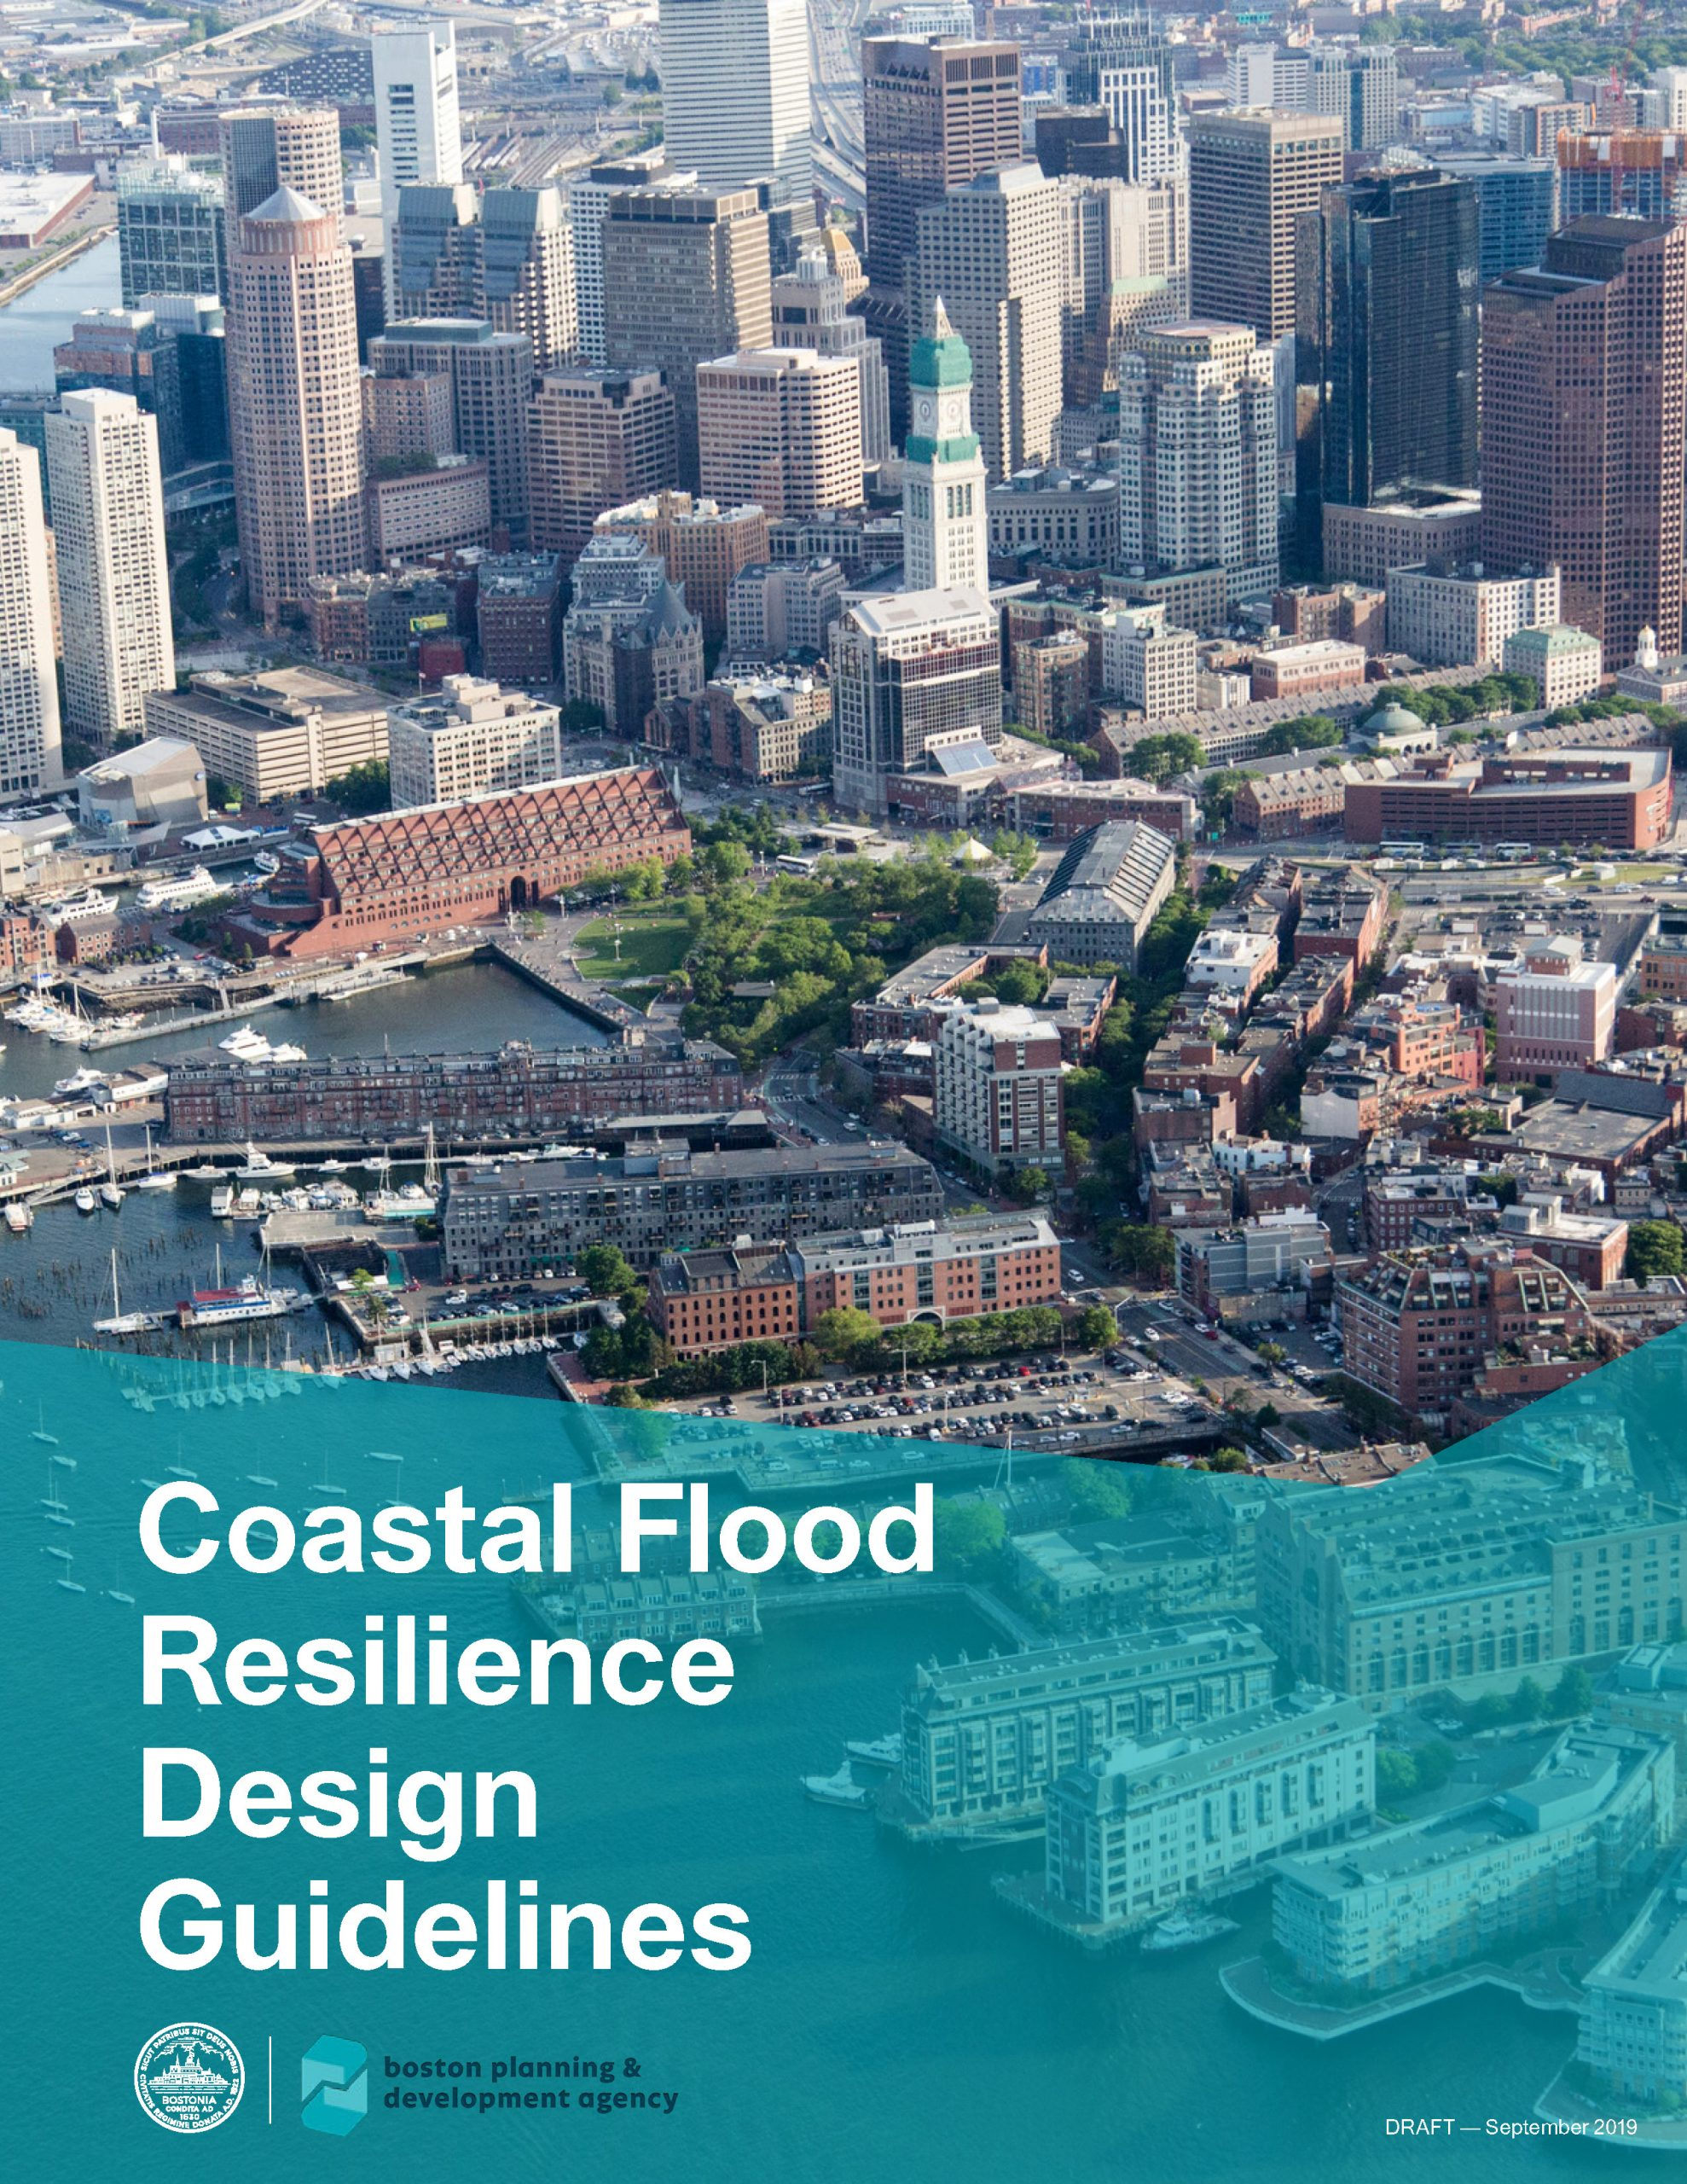 Boston Coastal Flood Resilience Design Guidelines wins 2020 APA Excellence in Sustainability Award!